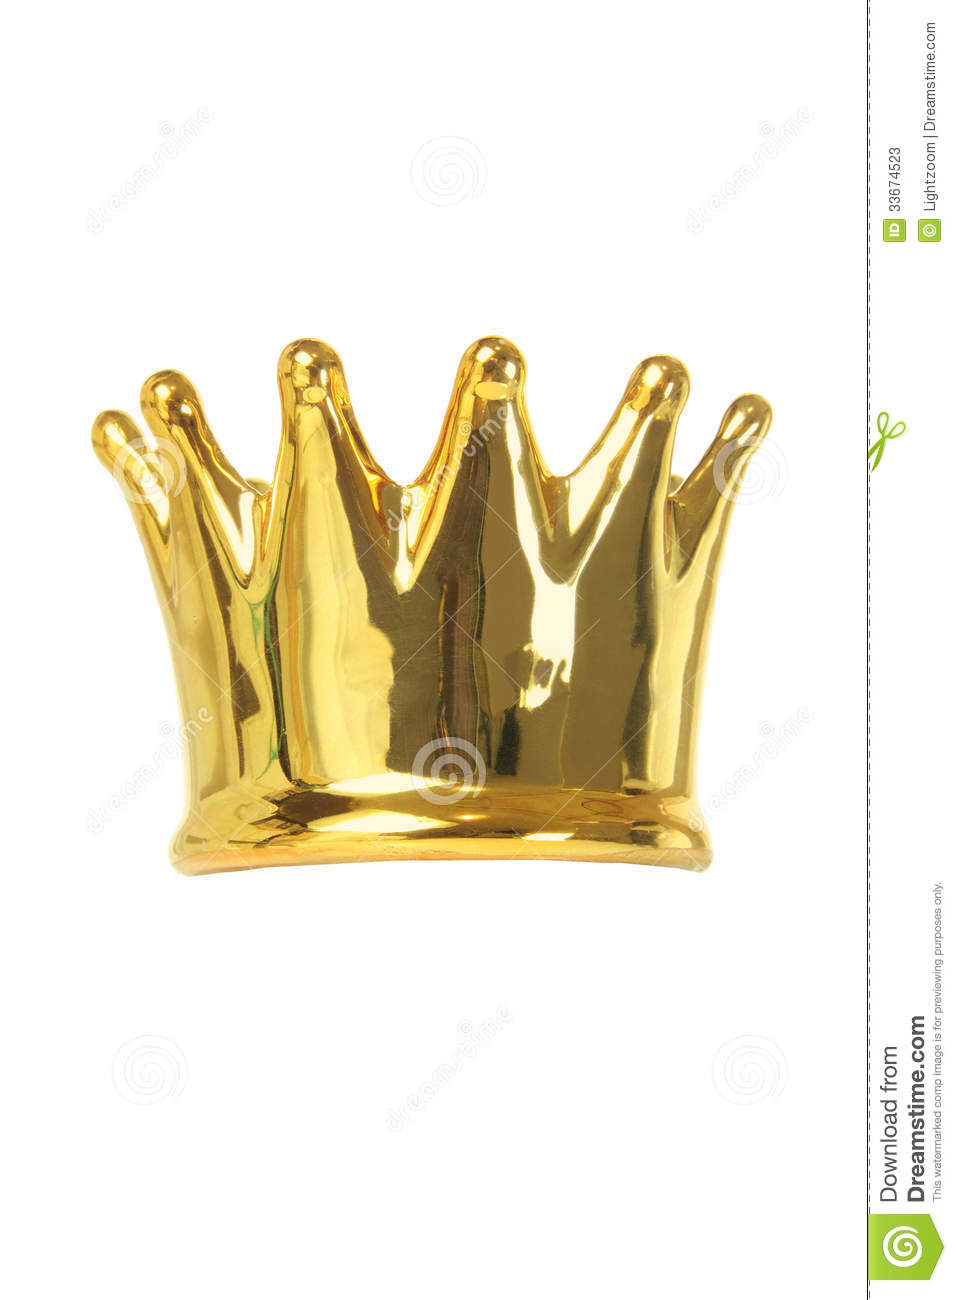 Gold crown background - photo#22